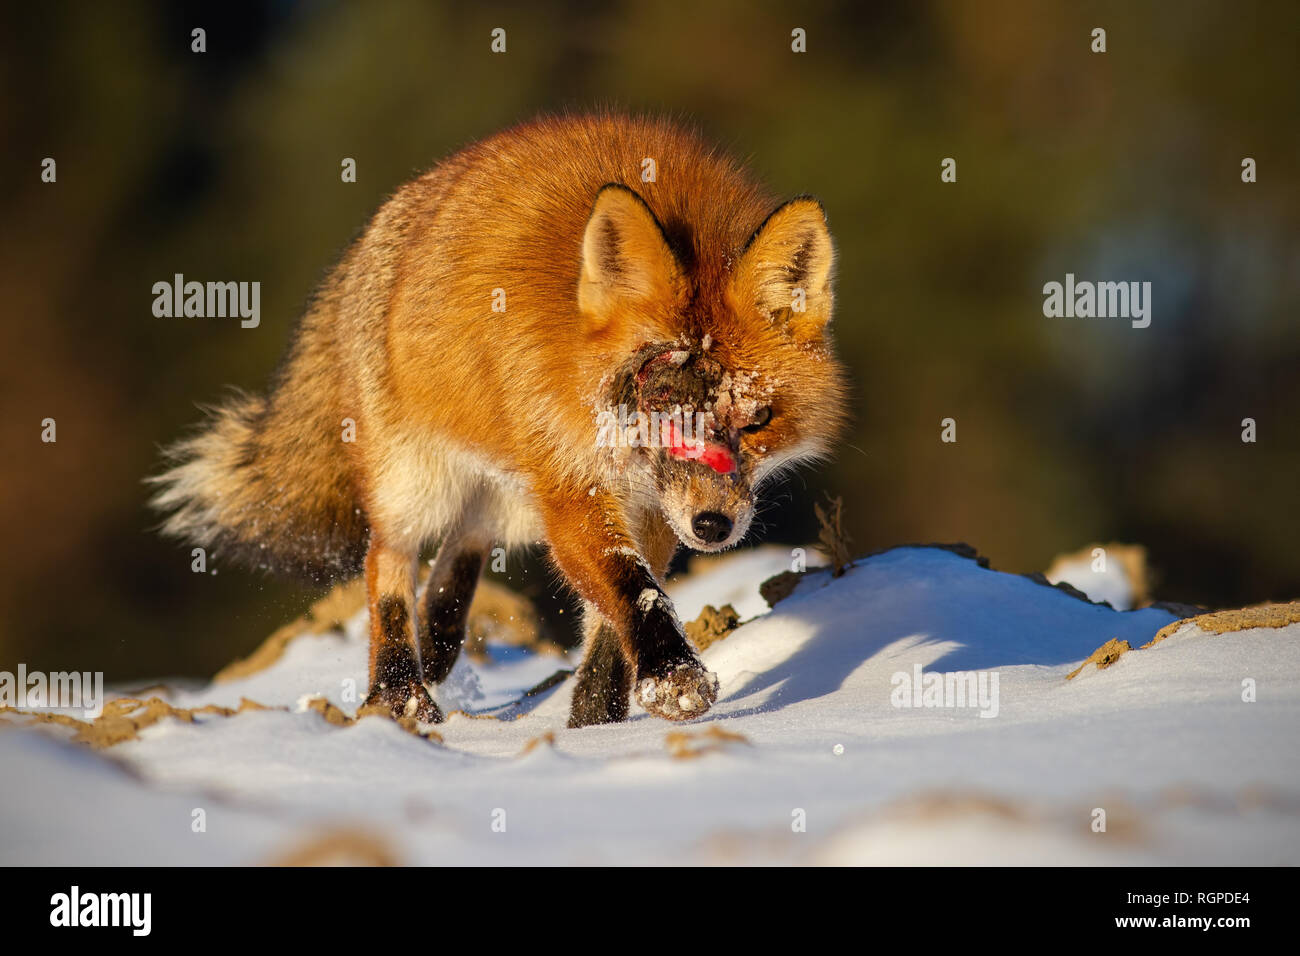 Injured wild red fox with wound on head approaching - Stock Image